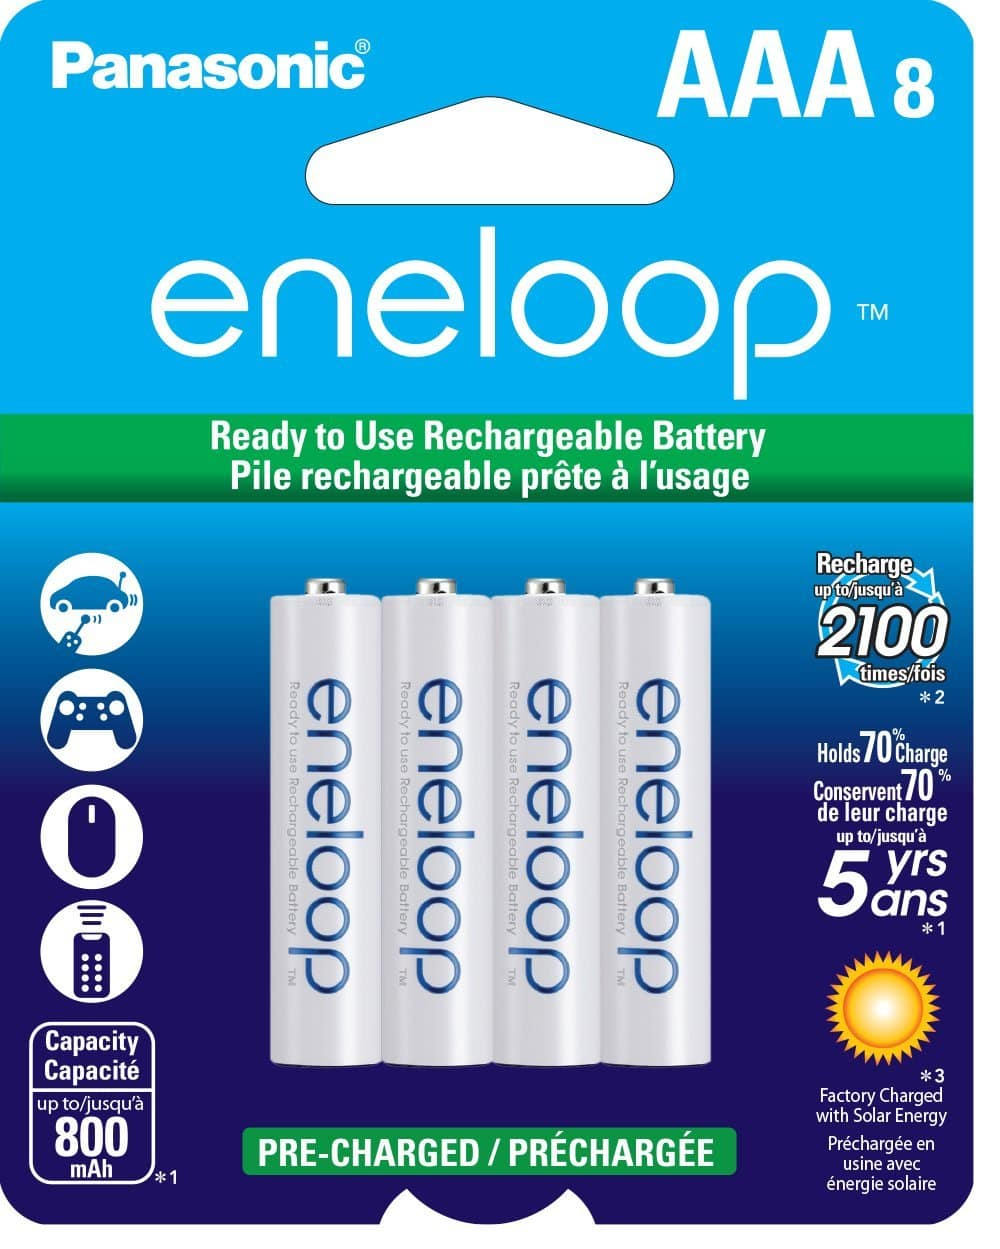 Panasonic Eneloop AAA New 2100 Cycle Ni-MH Pre-Charged Rechargeable Batteries, 8 Pack $15.49 w/Free Shipping @ Amazon